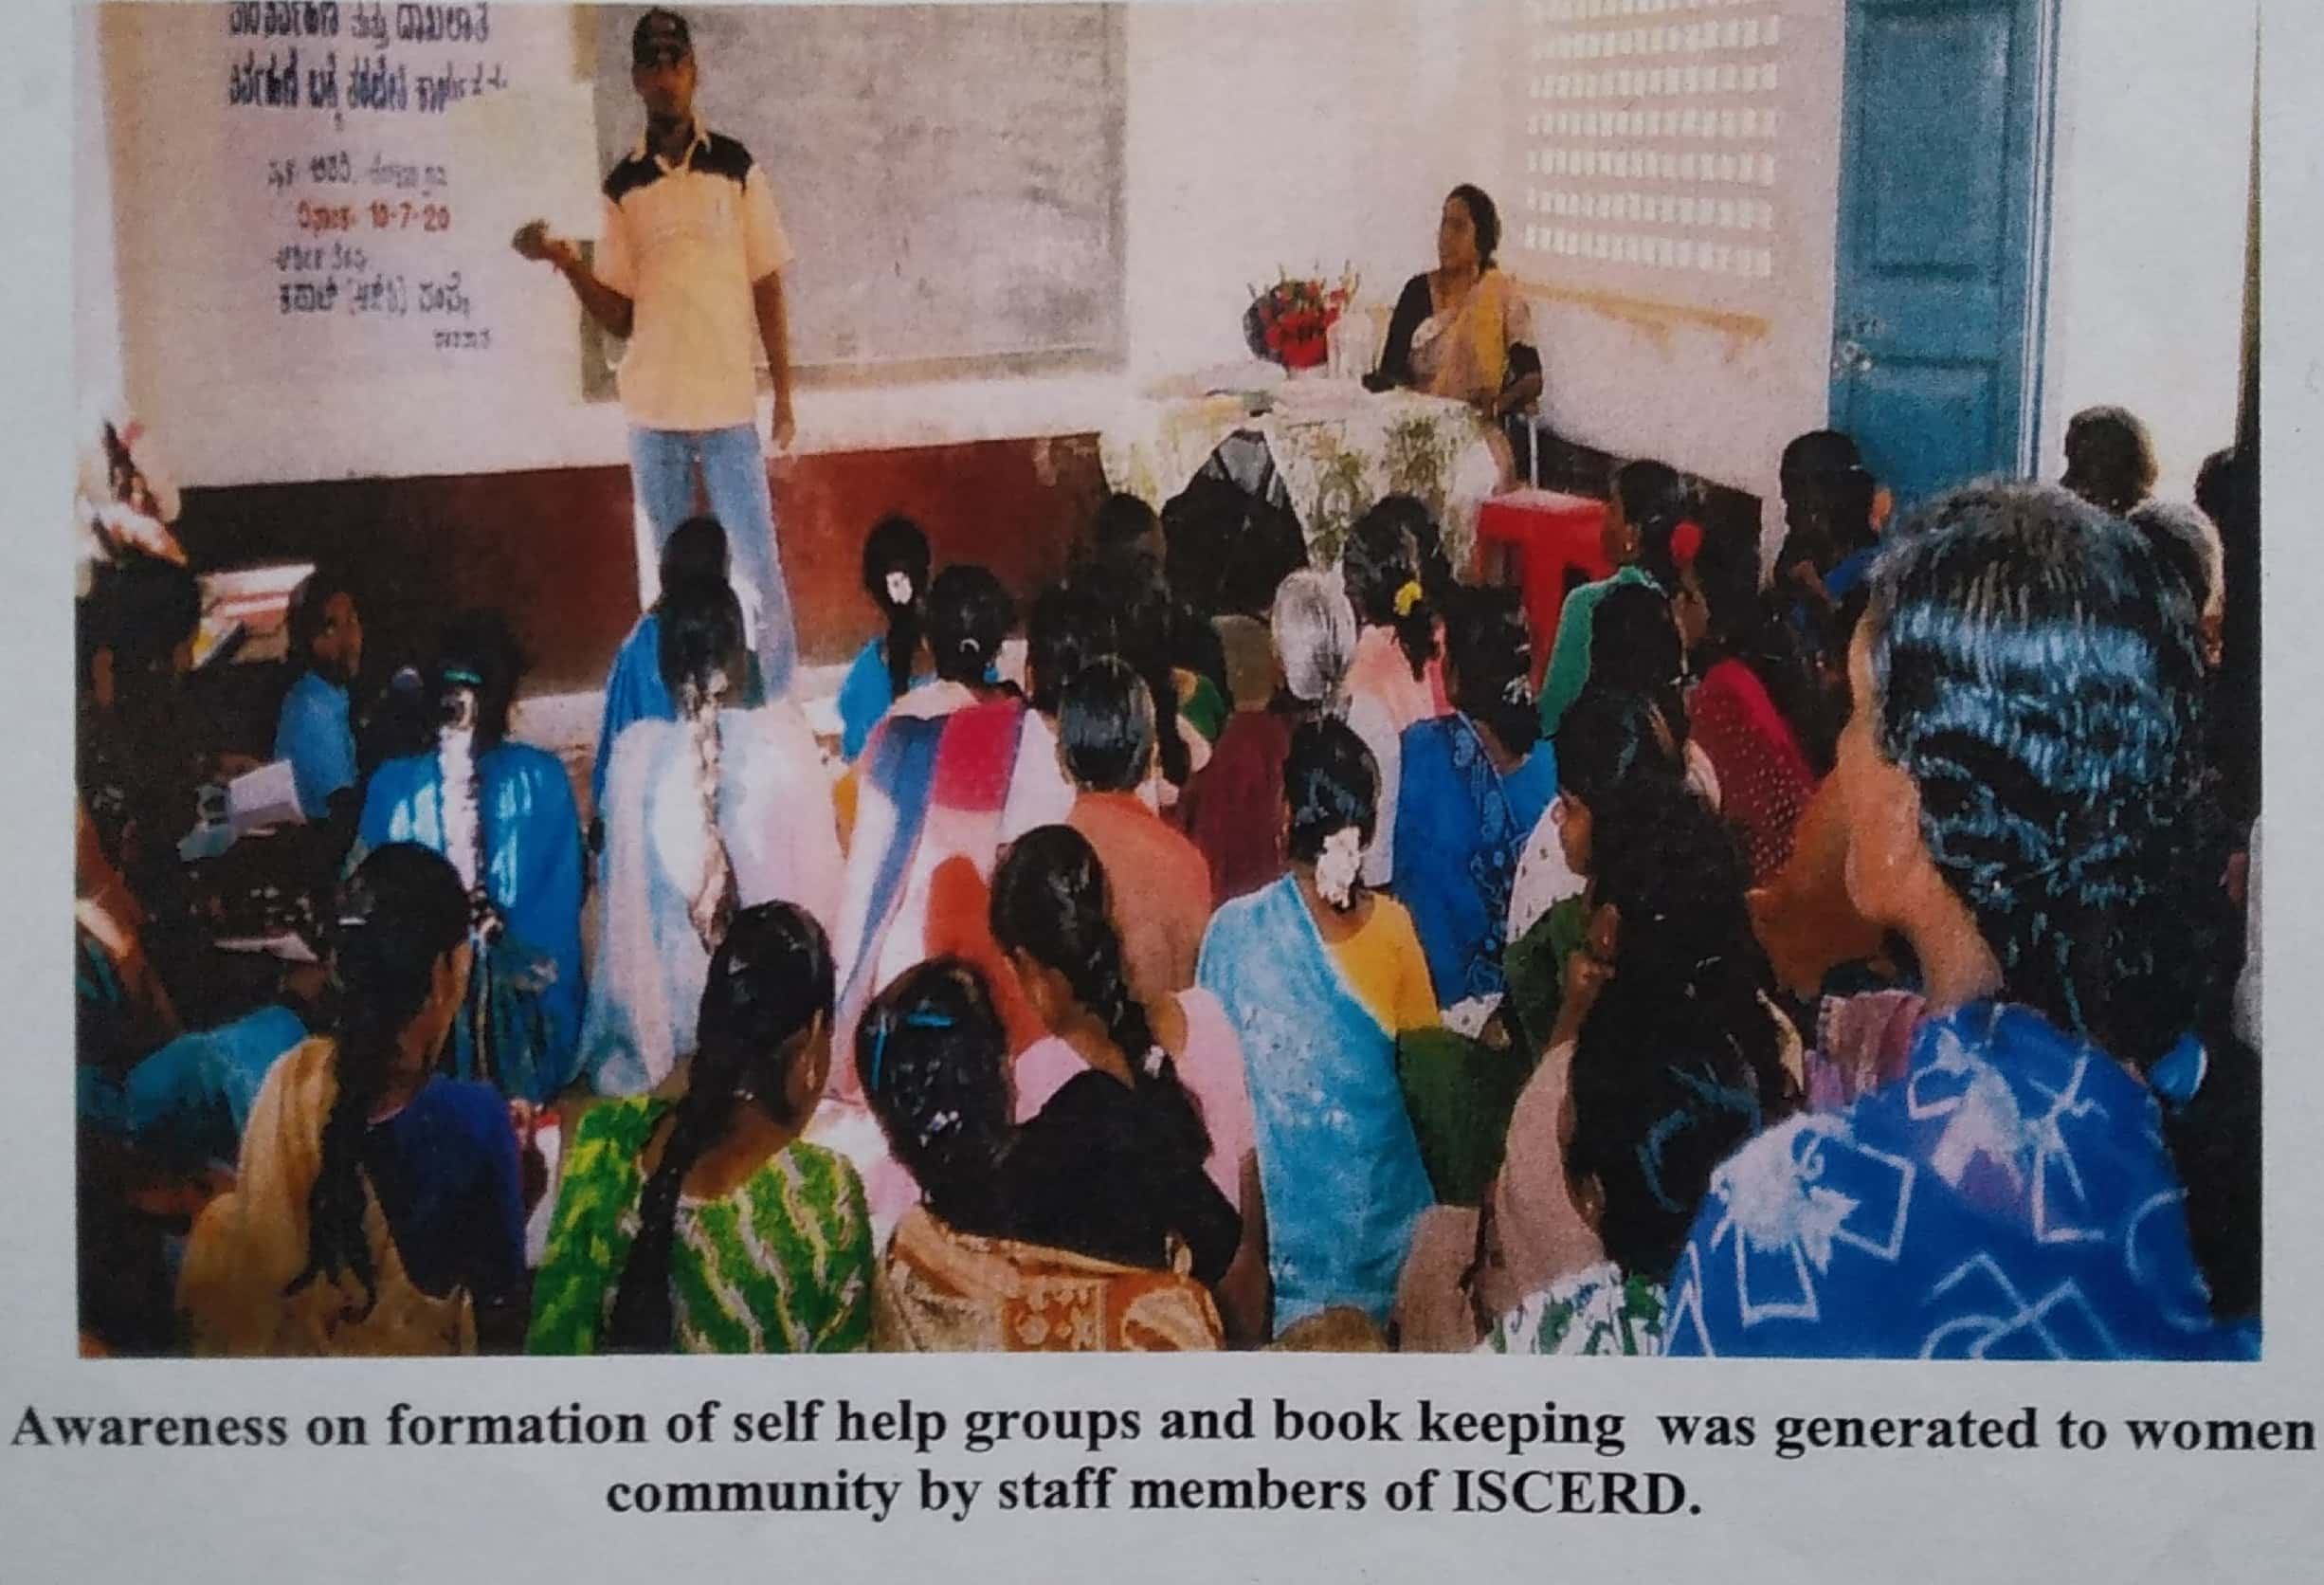 /media/iscerd/Awareness_on_Self_Help_Groups_formation_and_book_keeping.jpg